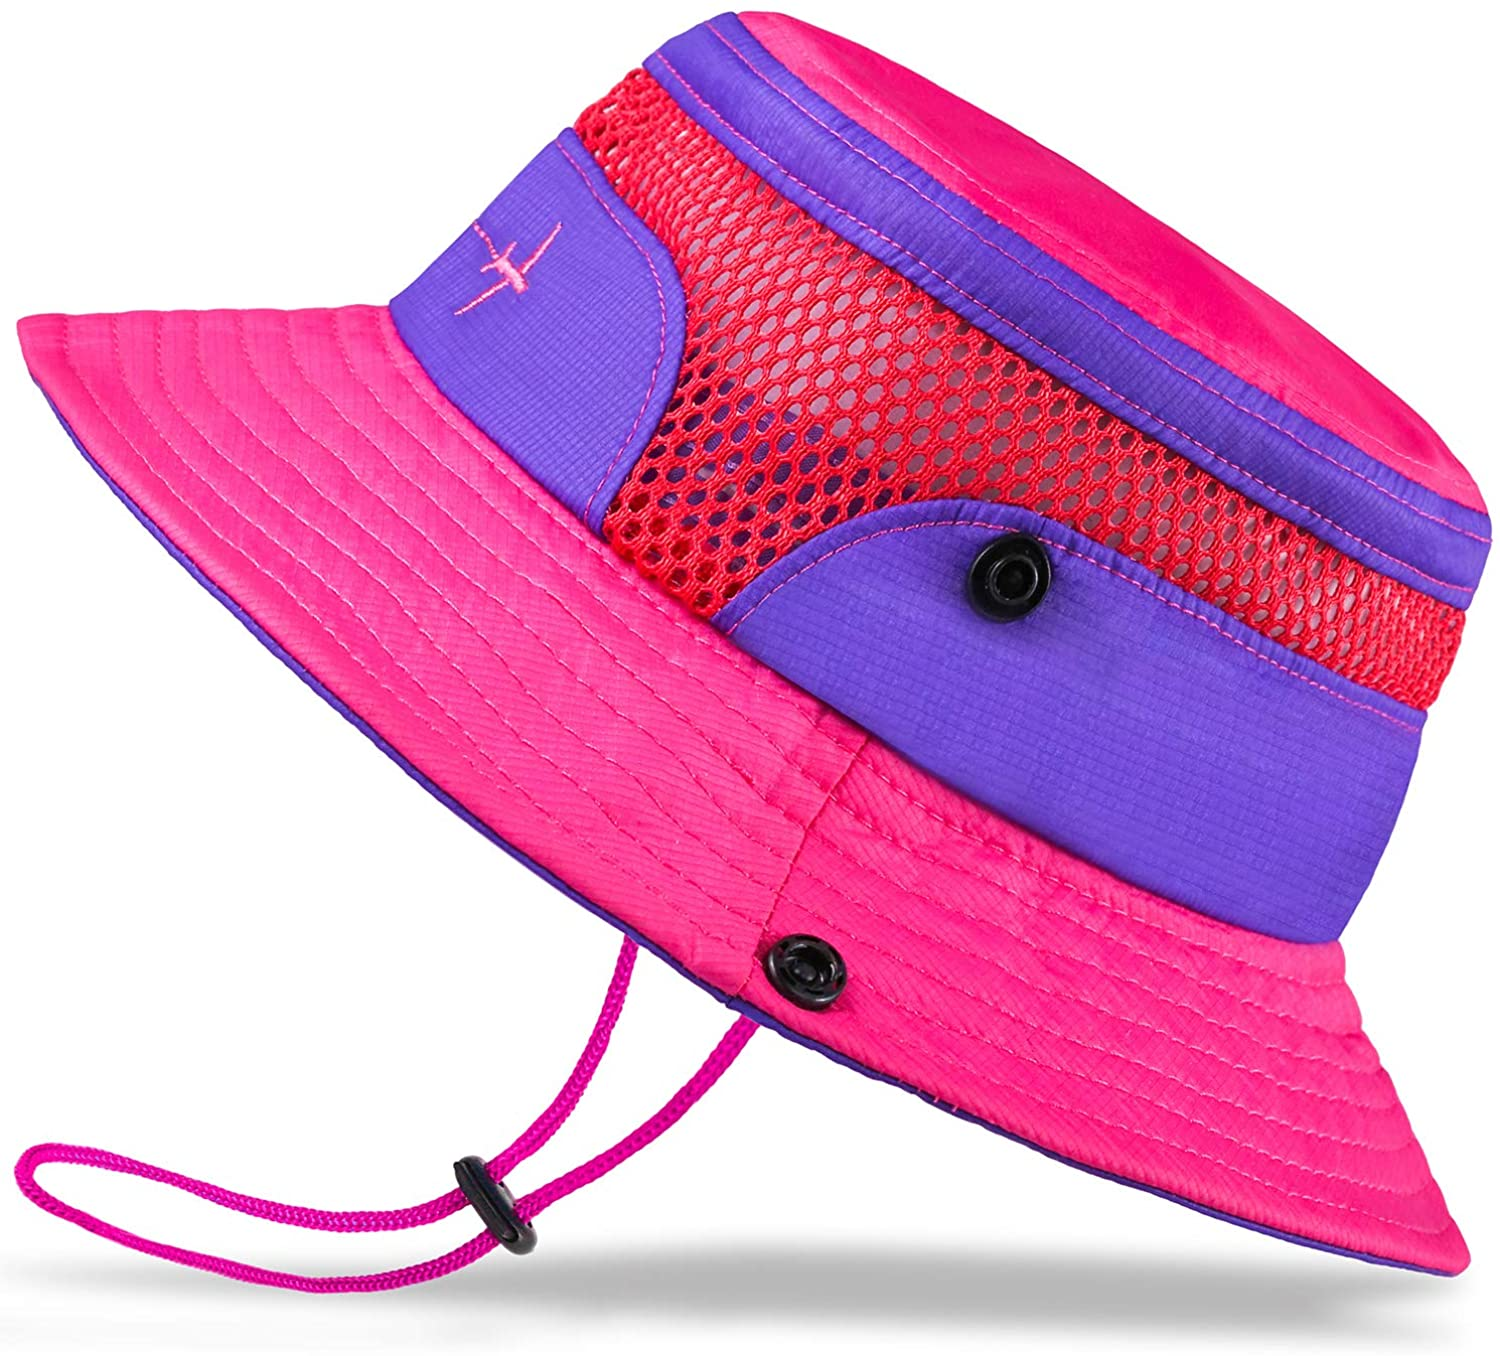 Adjustable Summer Play Baby Sun Hat Toddler Sun Hat Kids Breathable Bucket Sun Protection Hat Stay-on Chin-Strap